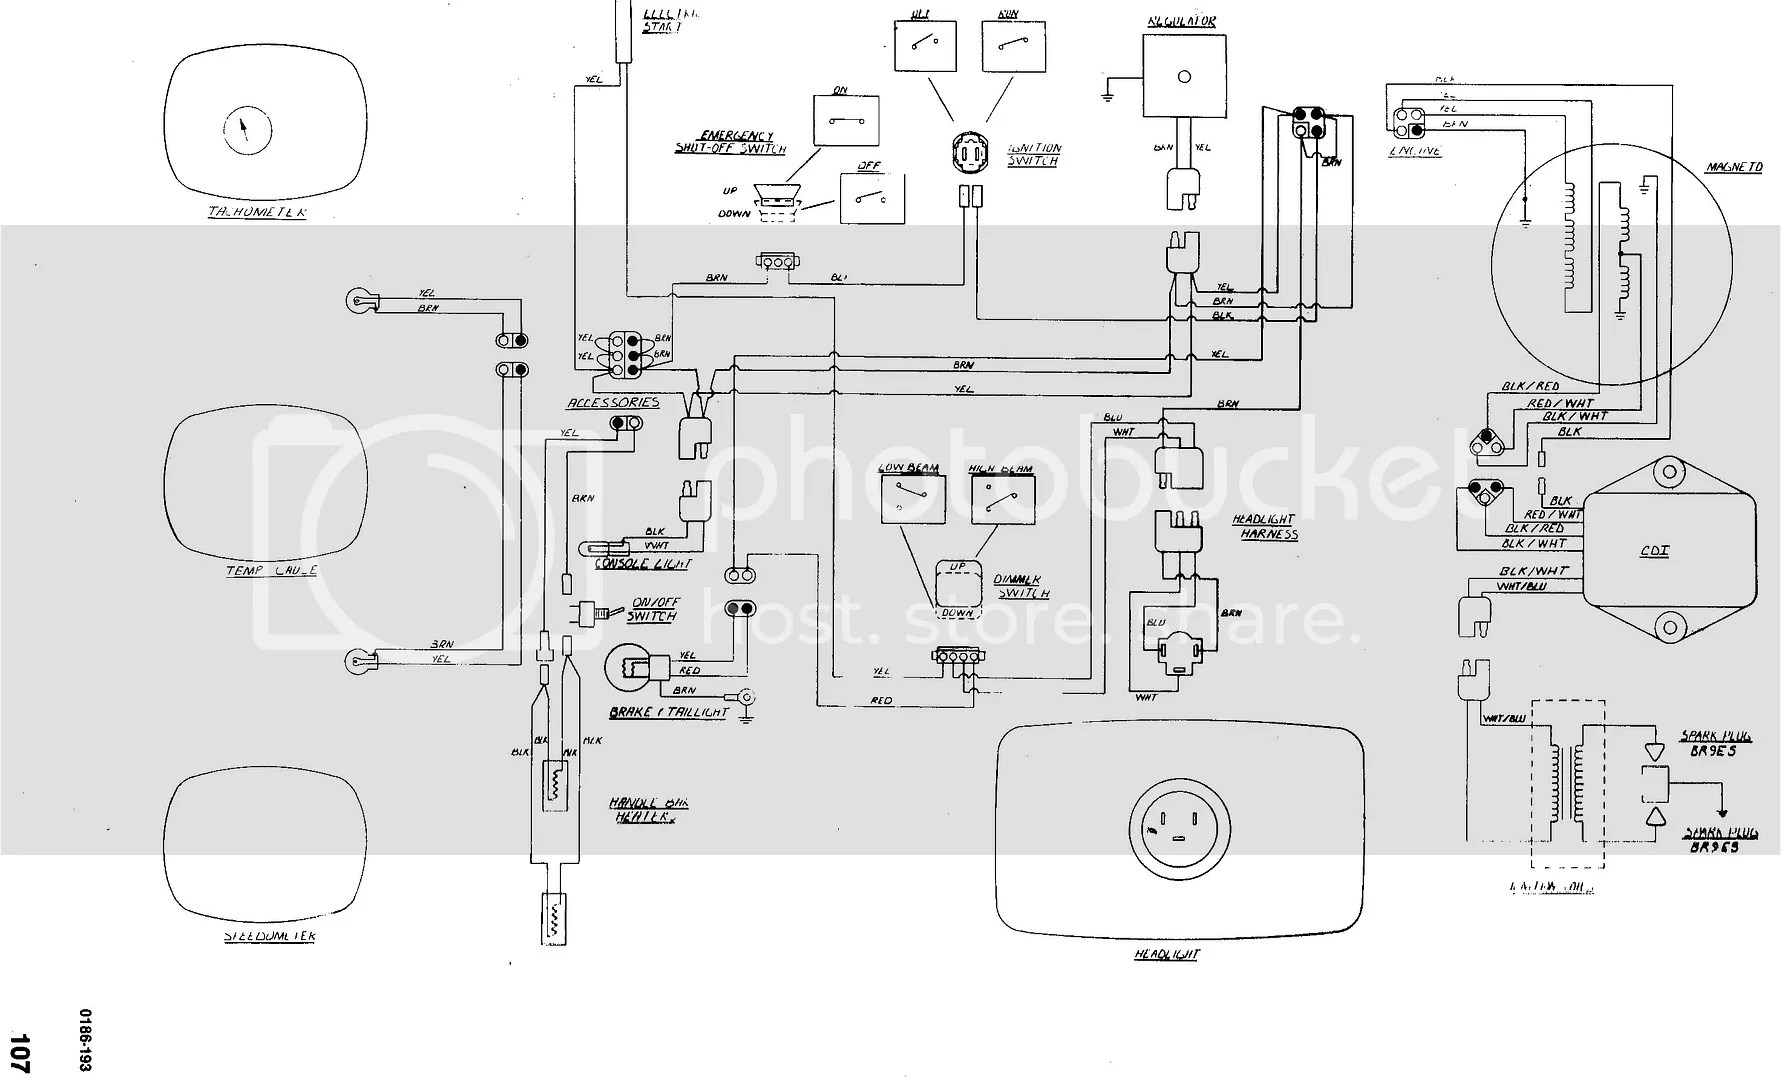 hight resolution of 1992 wildcat 700 wiring diagram wiring diagram sort1993 arctic wildcat wiring diagram wiring diagram view 1992